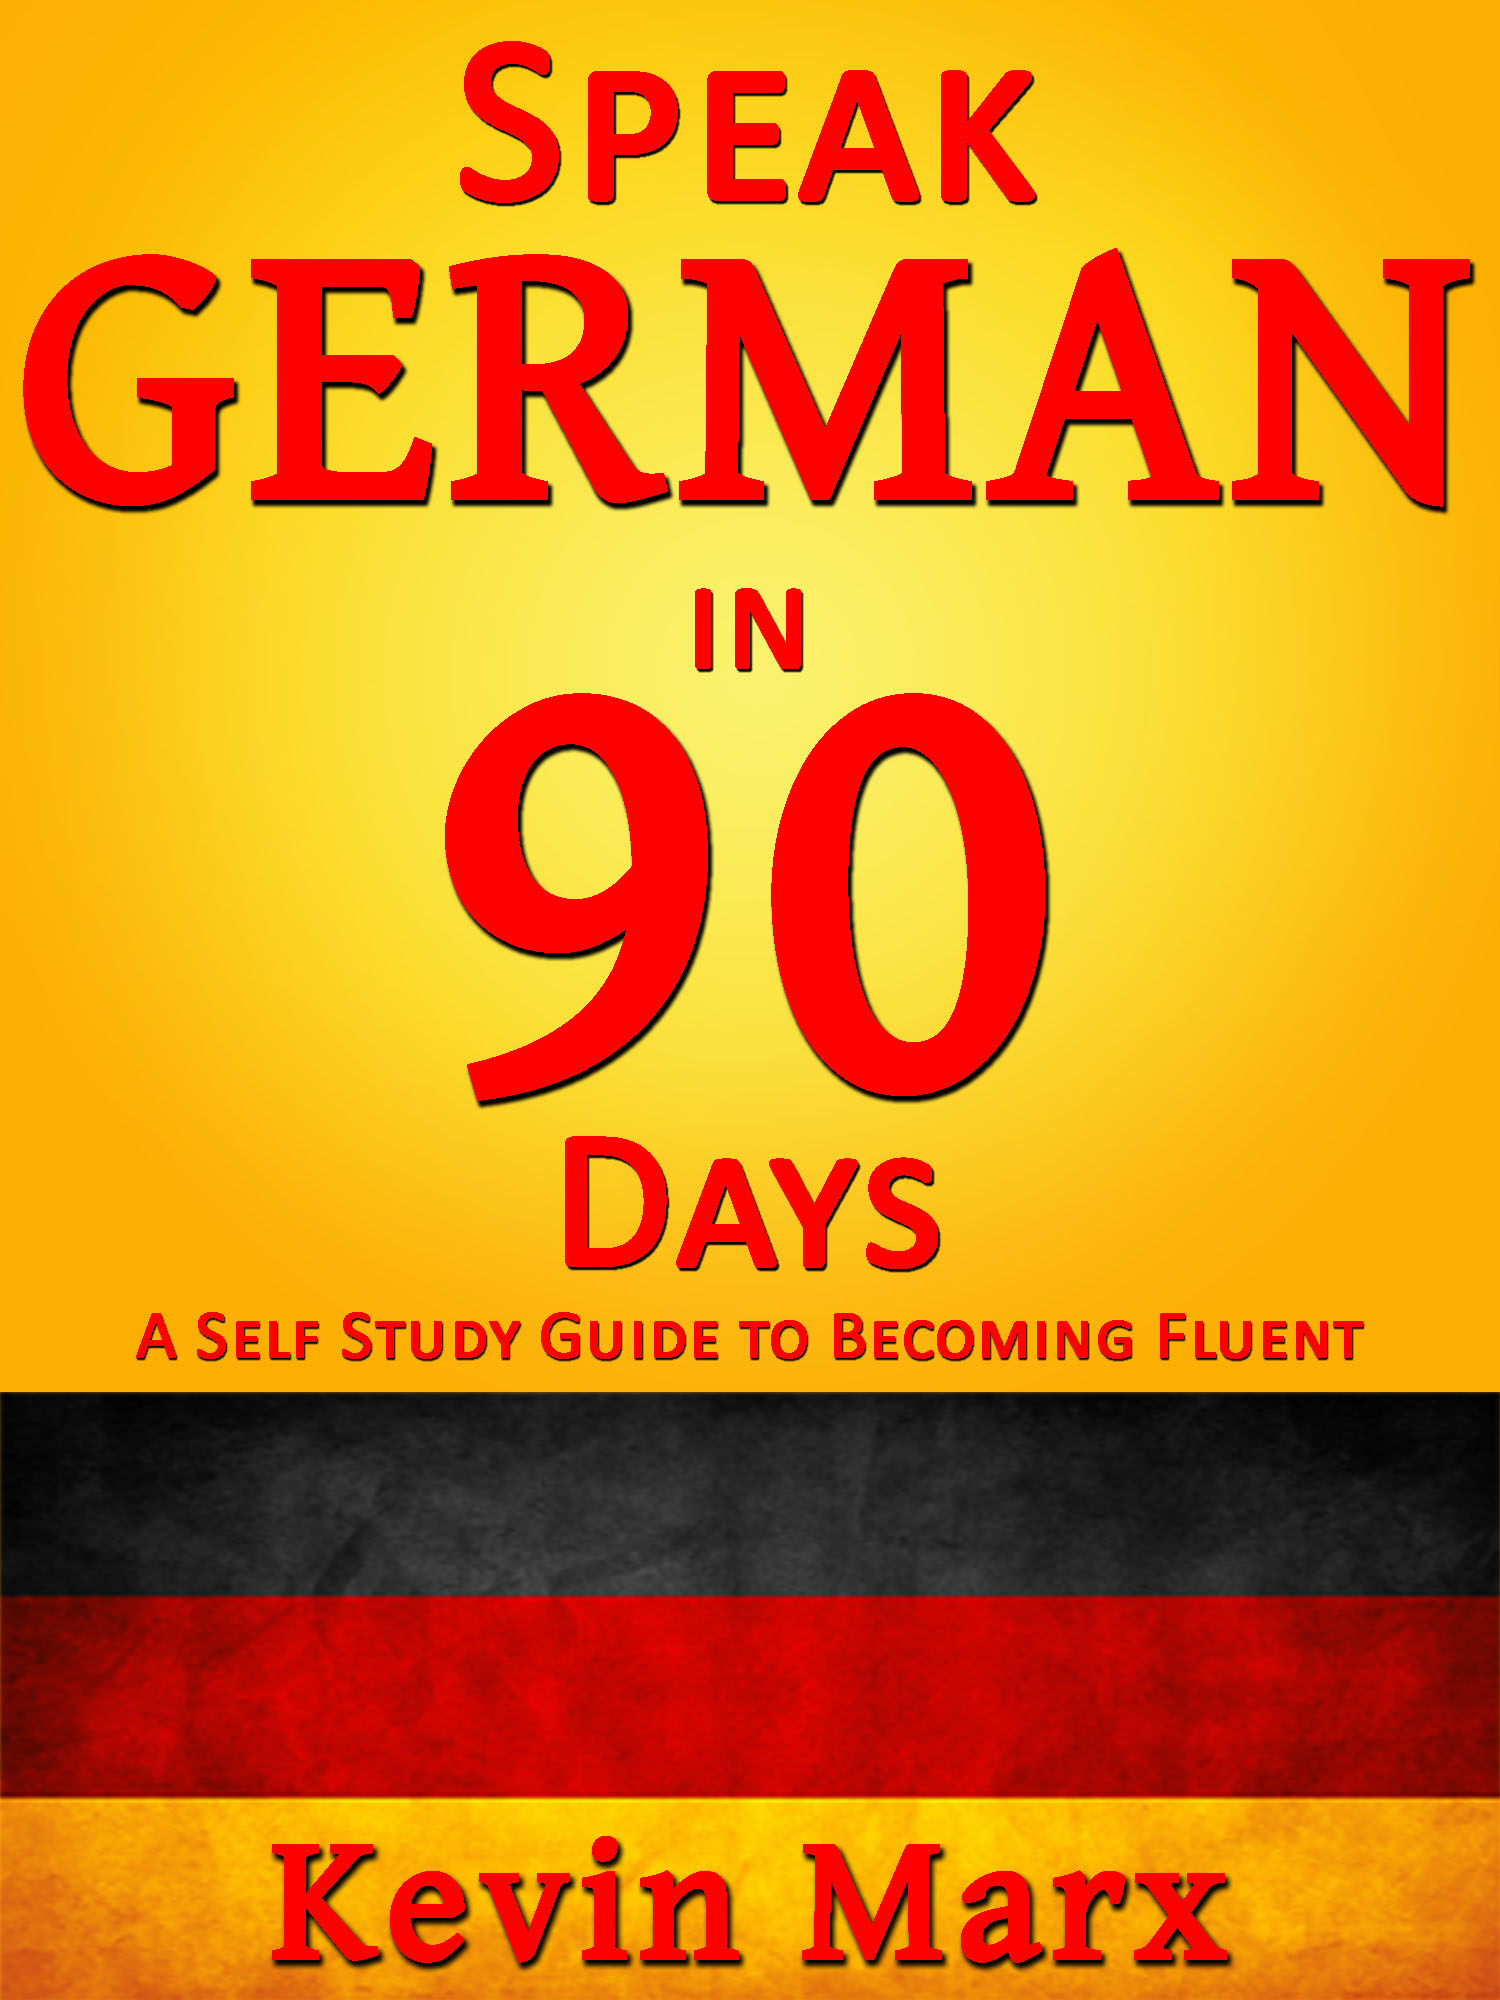 Speak German in 90 Days: A Self Study Guide to Becoming Fluent, an Ebook by  Kevin Marx